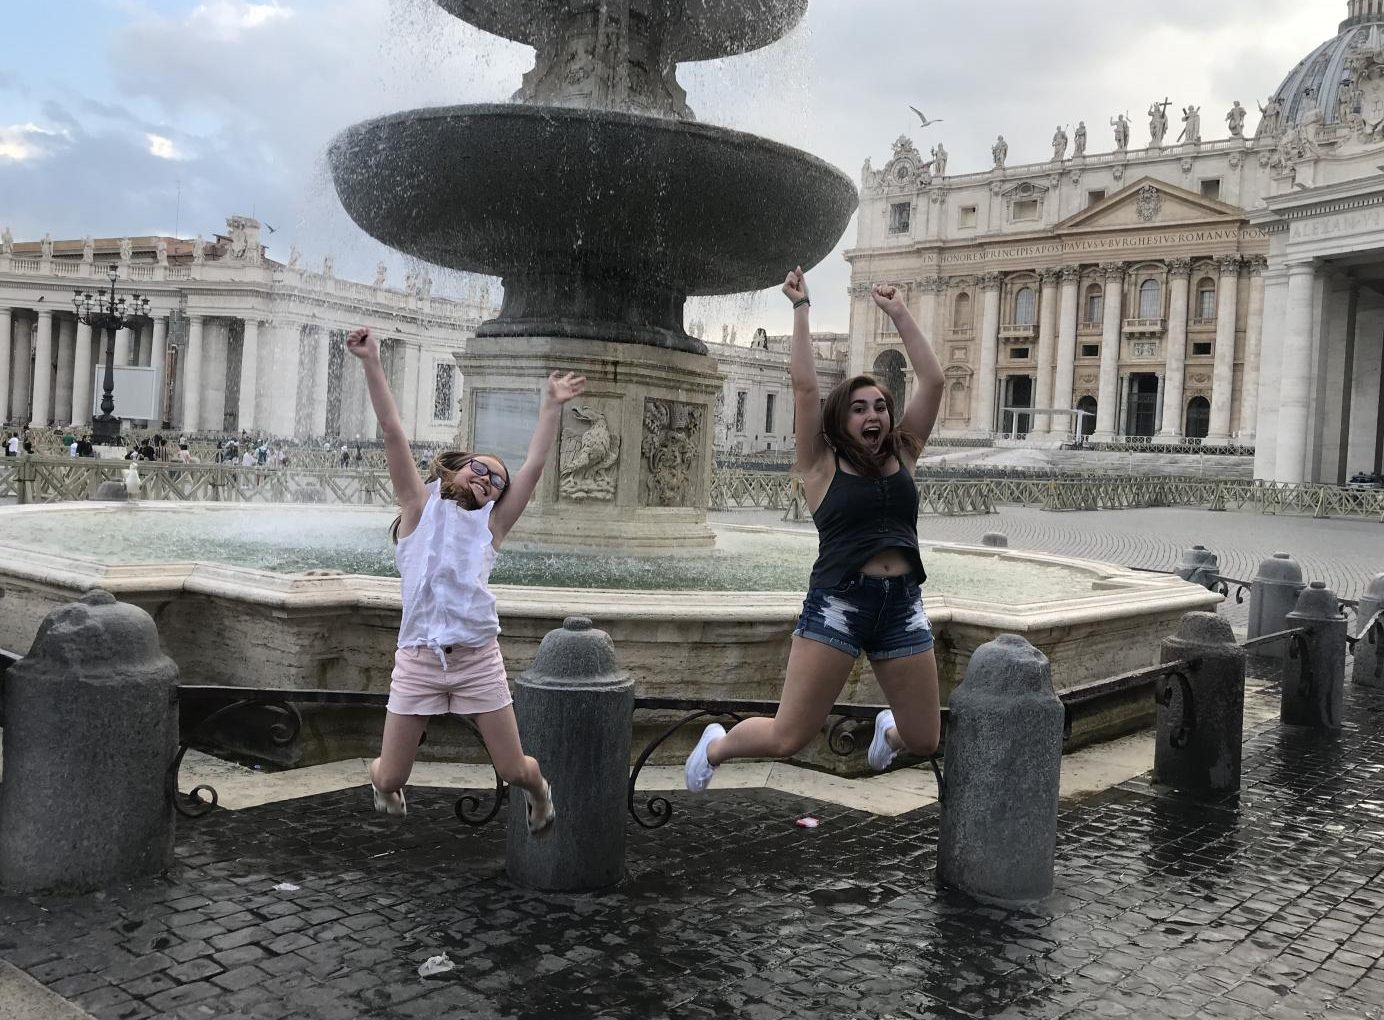 Senior Megan Mullins jumps with her sister in front of the Fountains of St. Peters Square in Italy in June. Students shared their summer experiences, ranging from vacation to summer school.